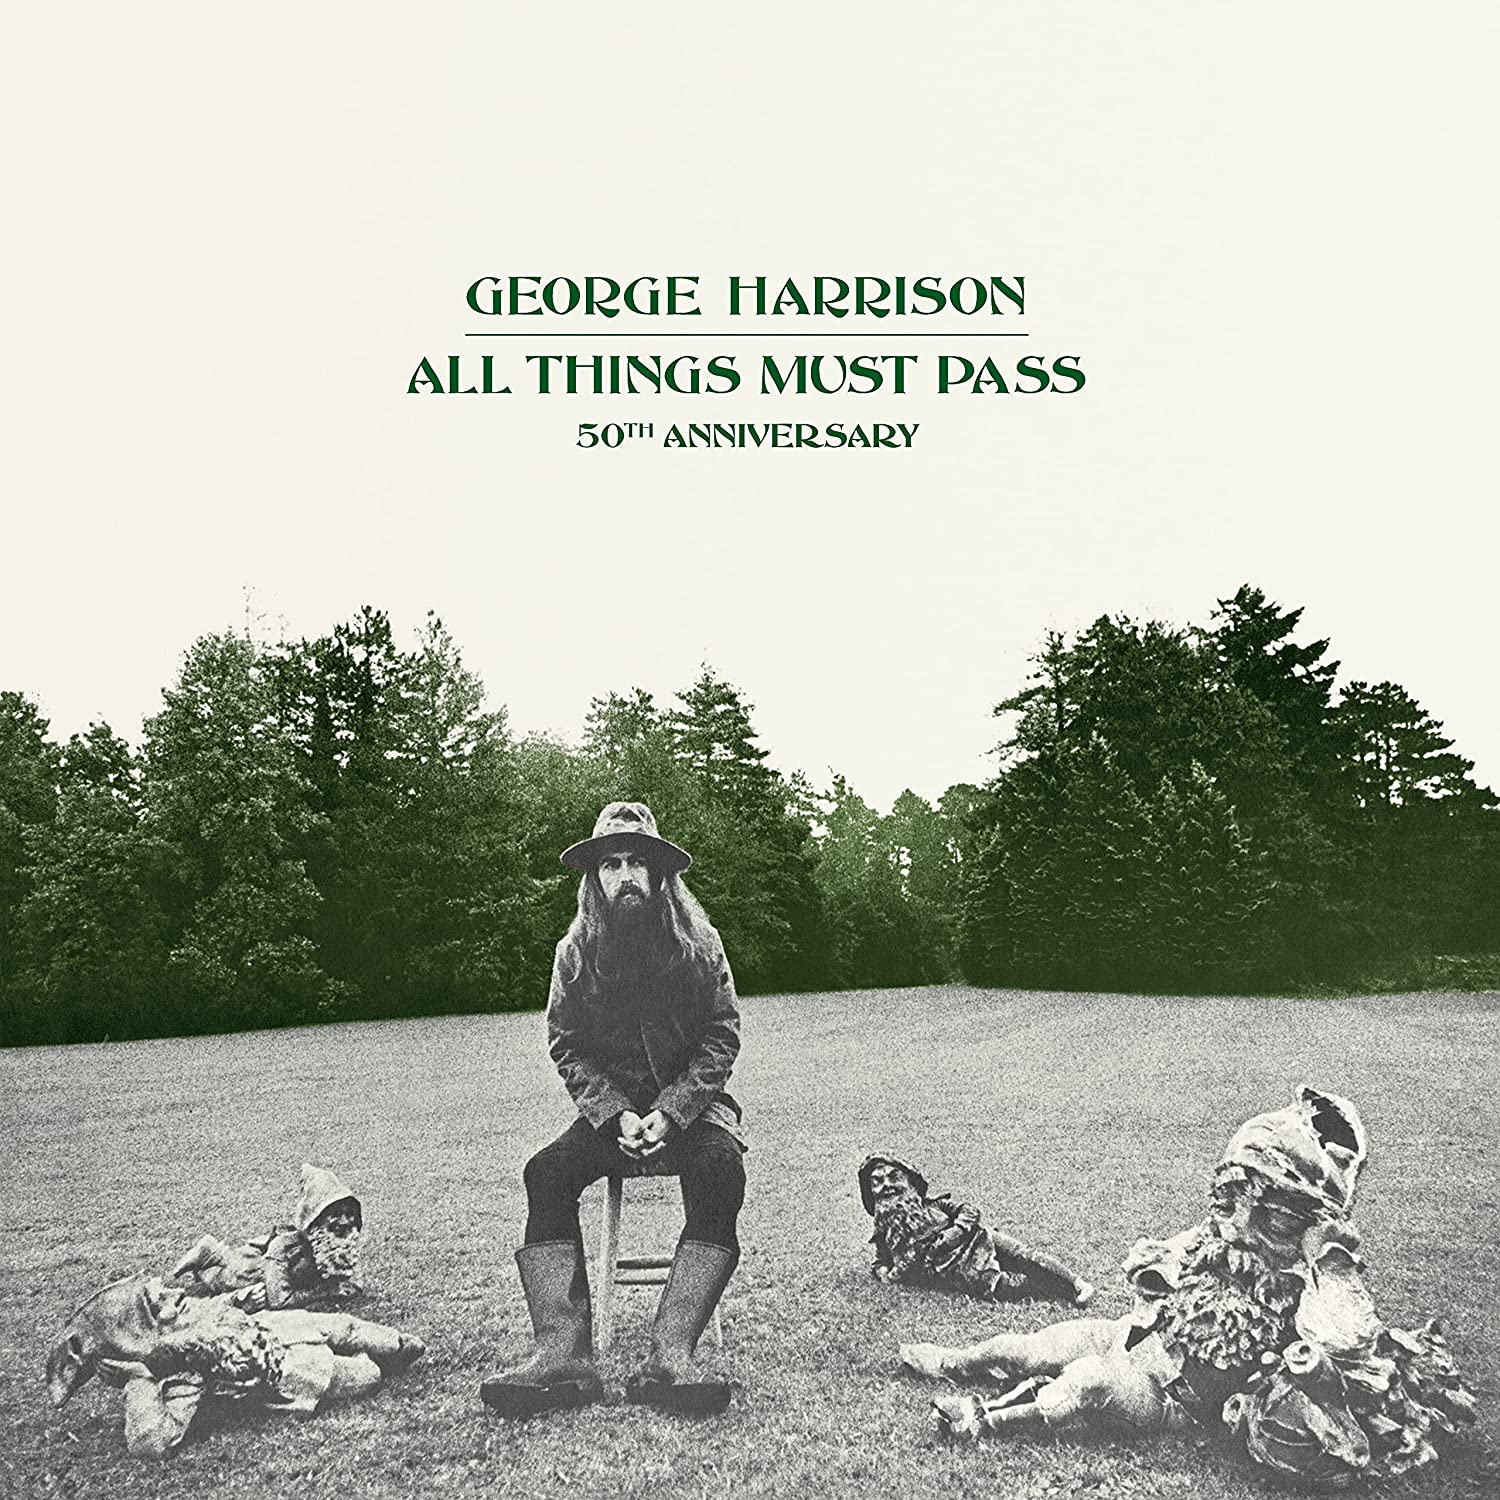 George Harrison / All Things Must Pass 50th anniversary